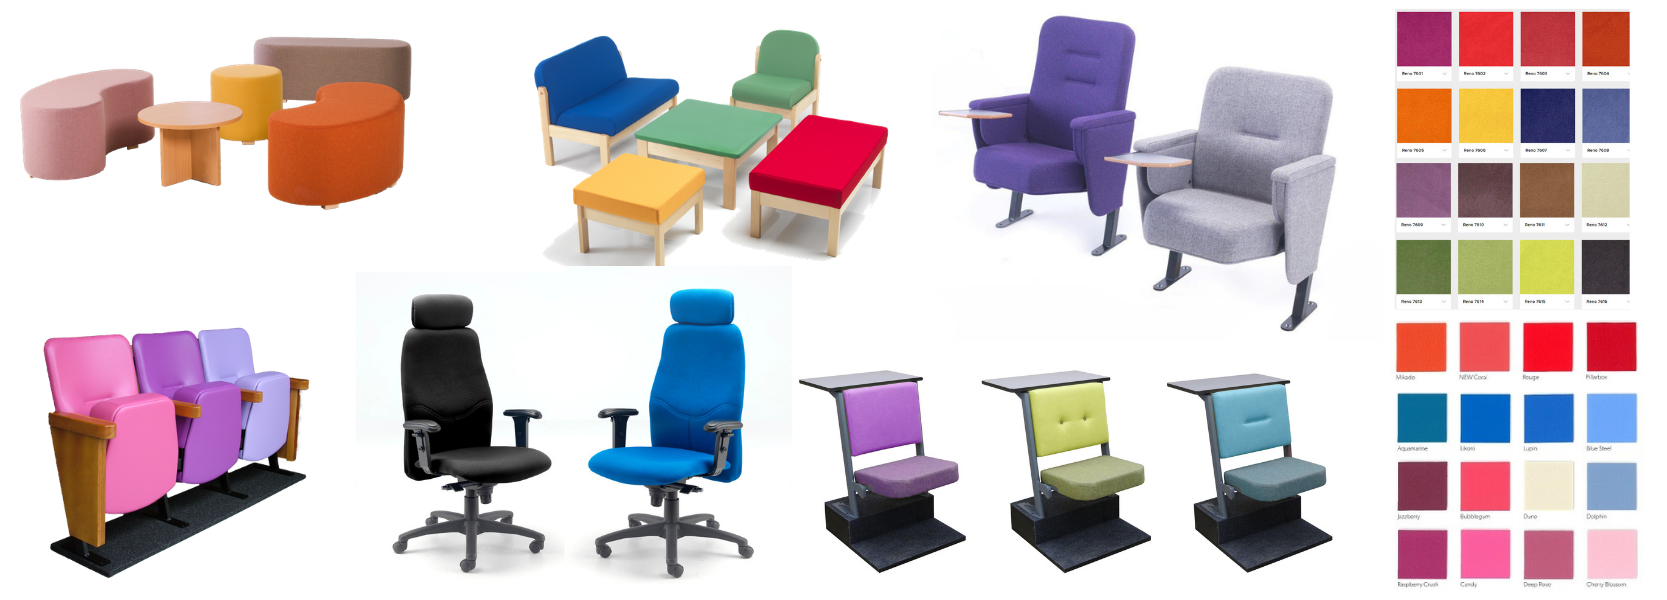 Range of different seat types in a variety of fabric colours and fabric swatches